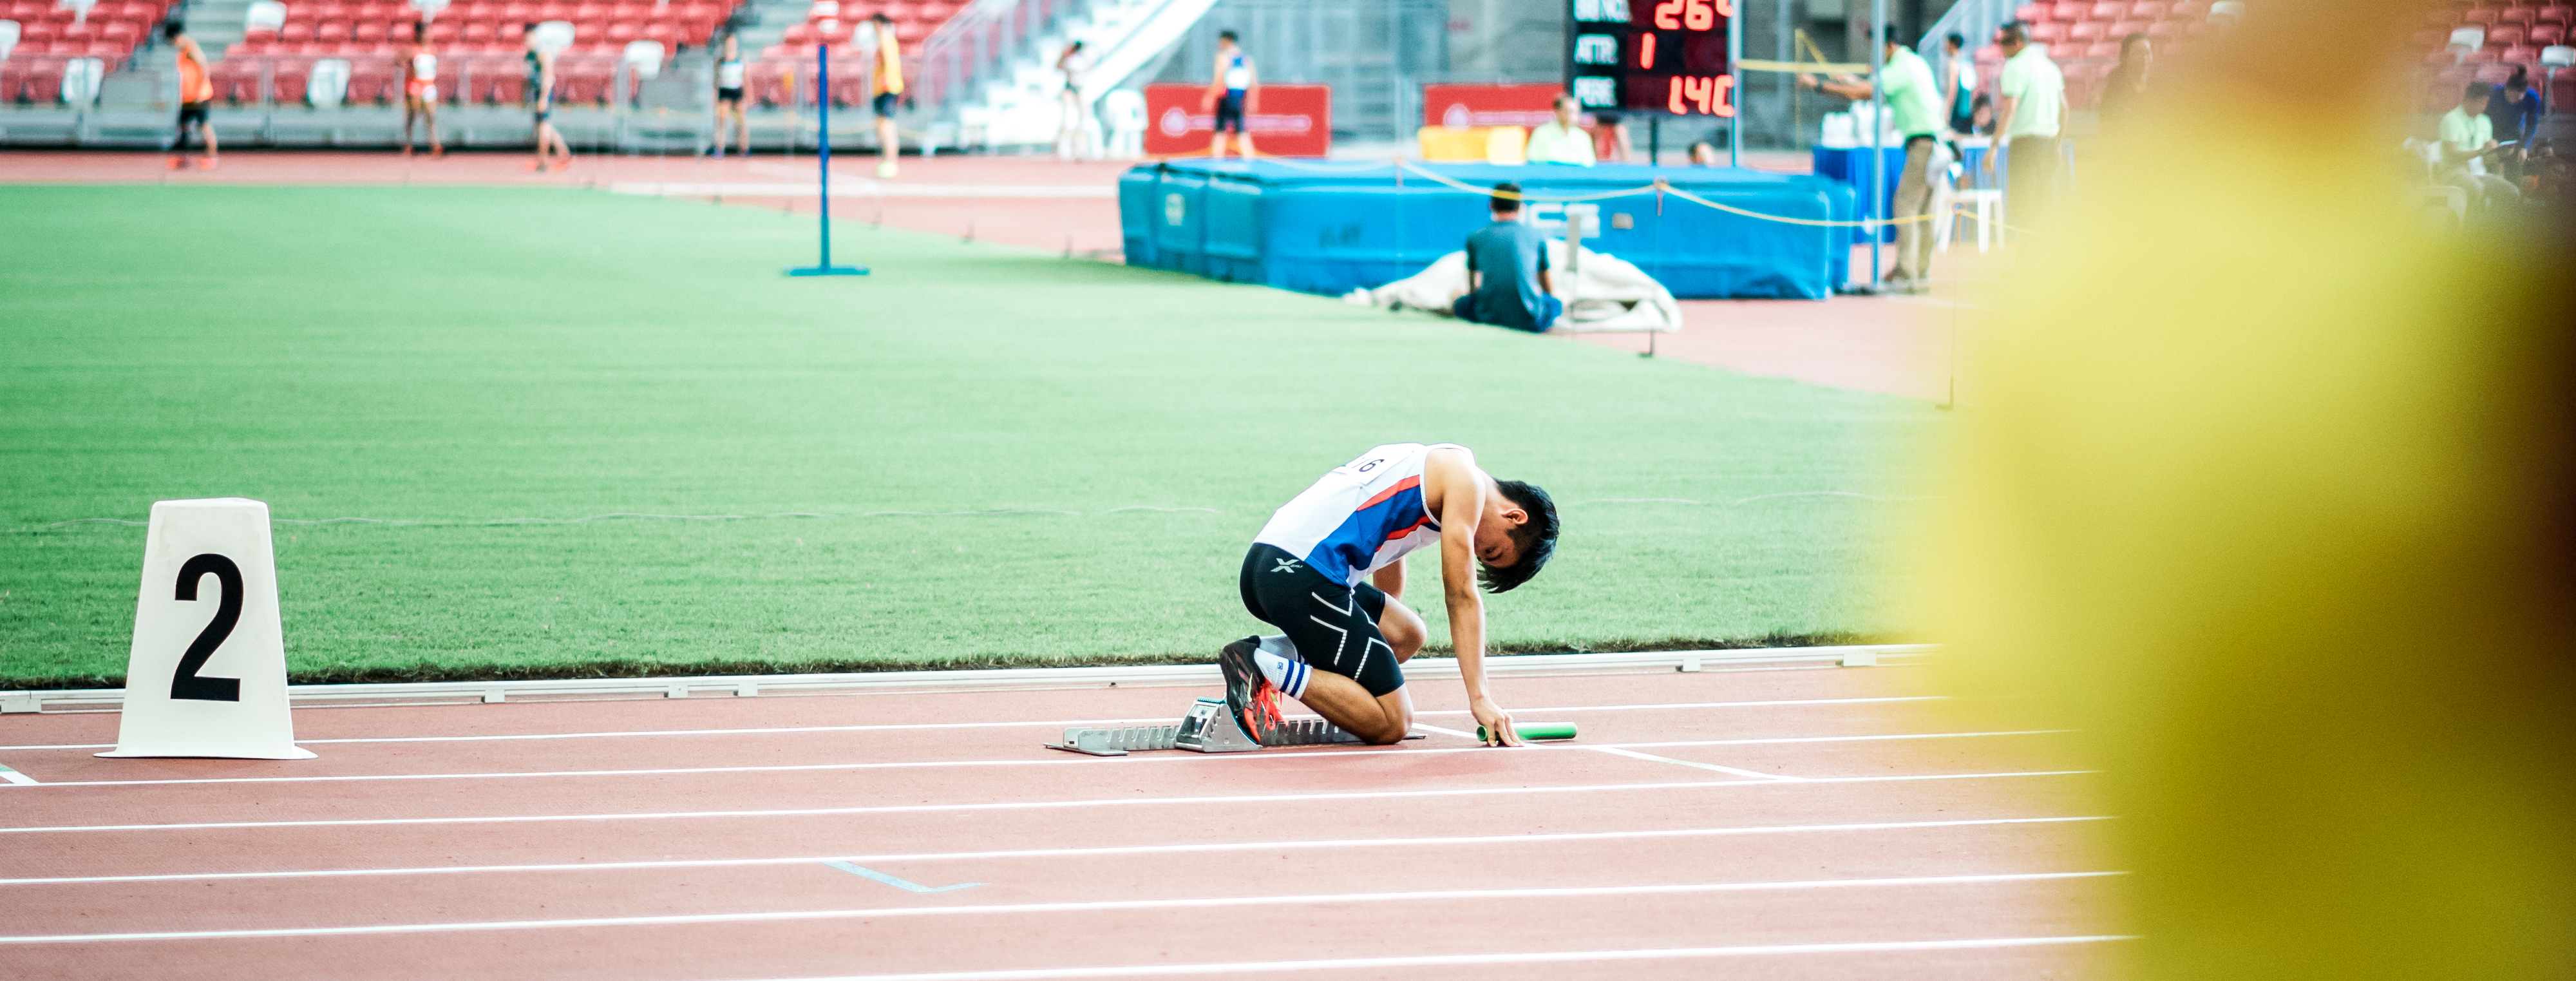 man about to run track and field